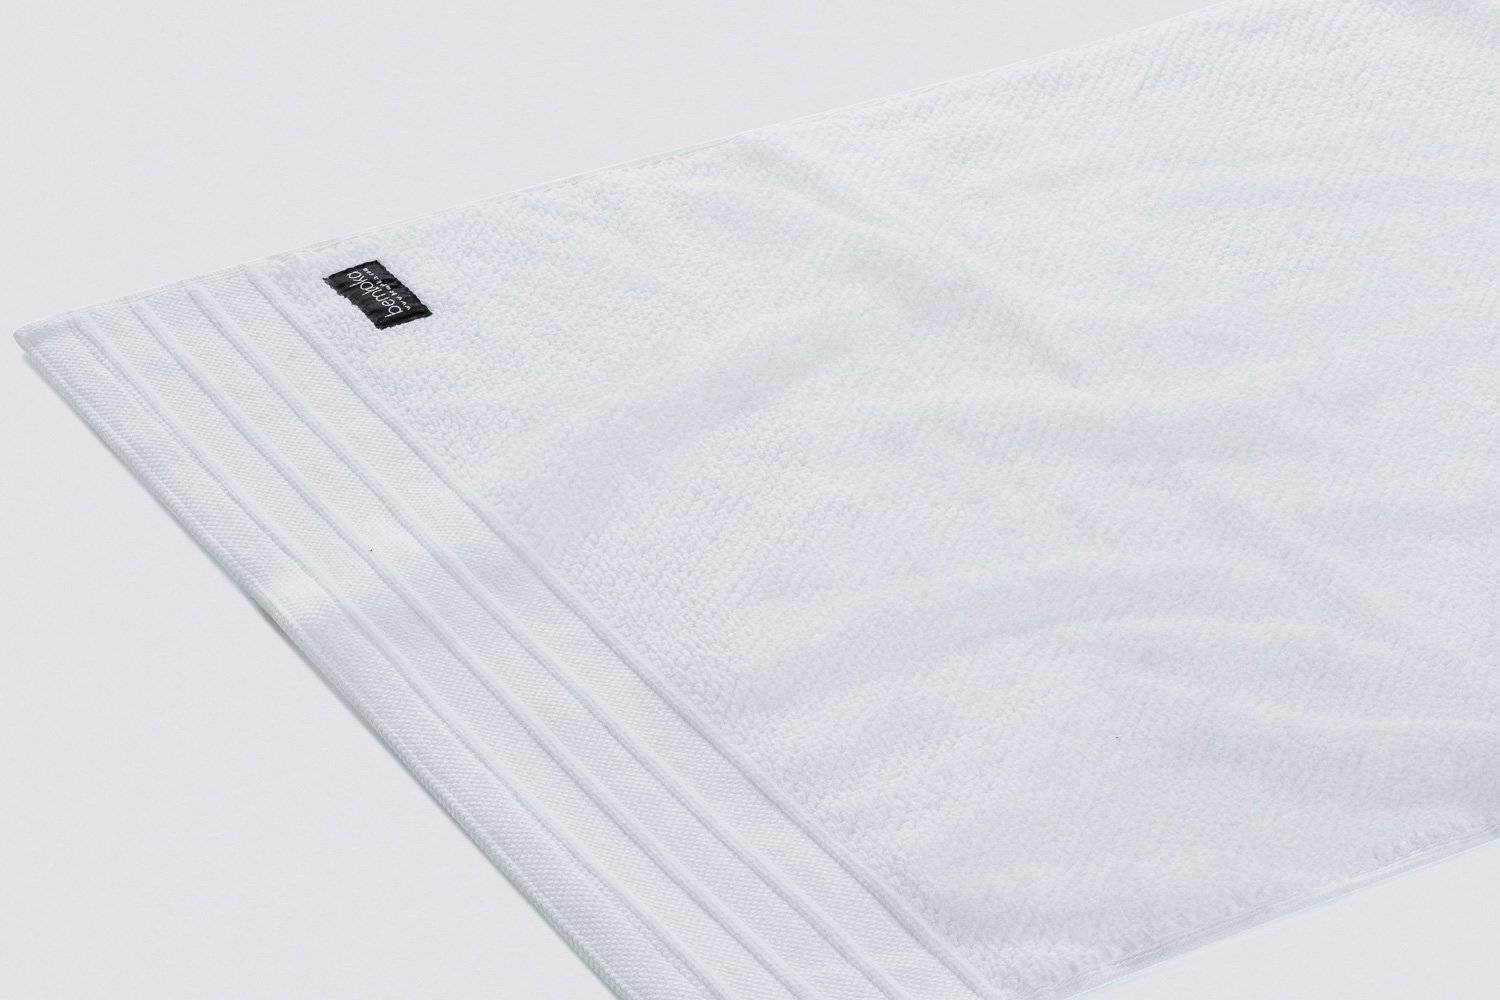 jacquard-hand towels in white colour